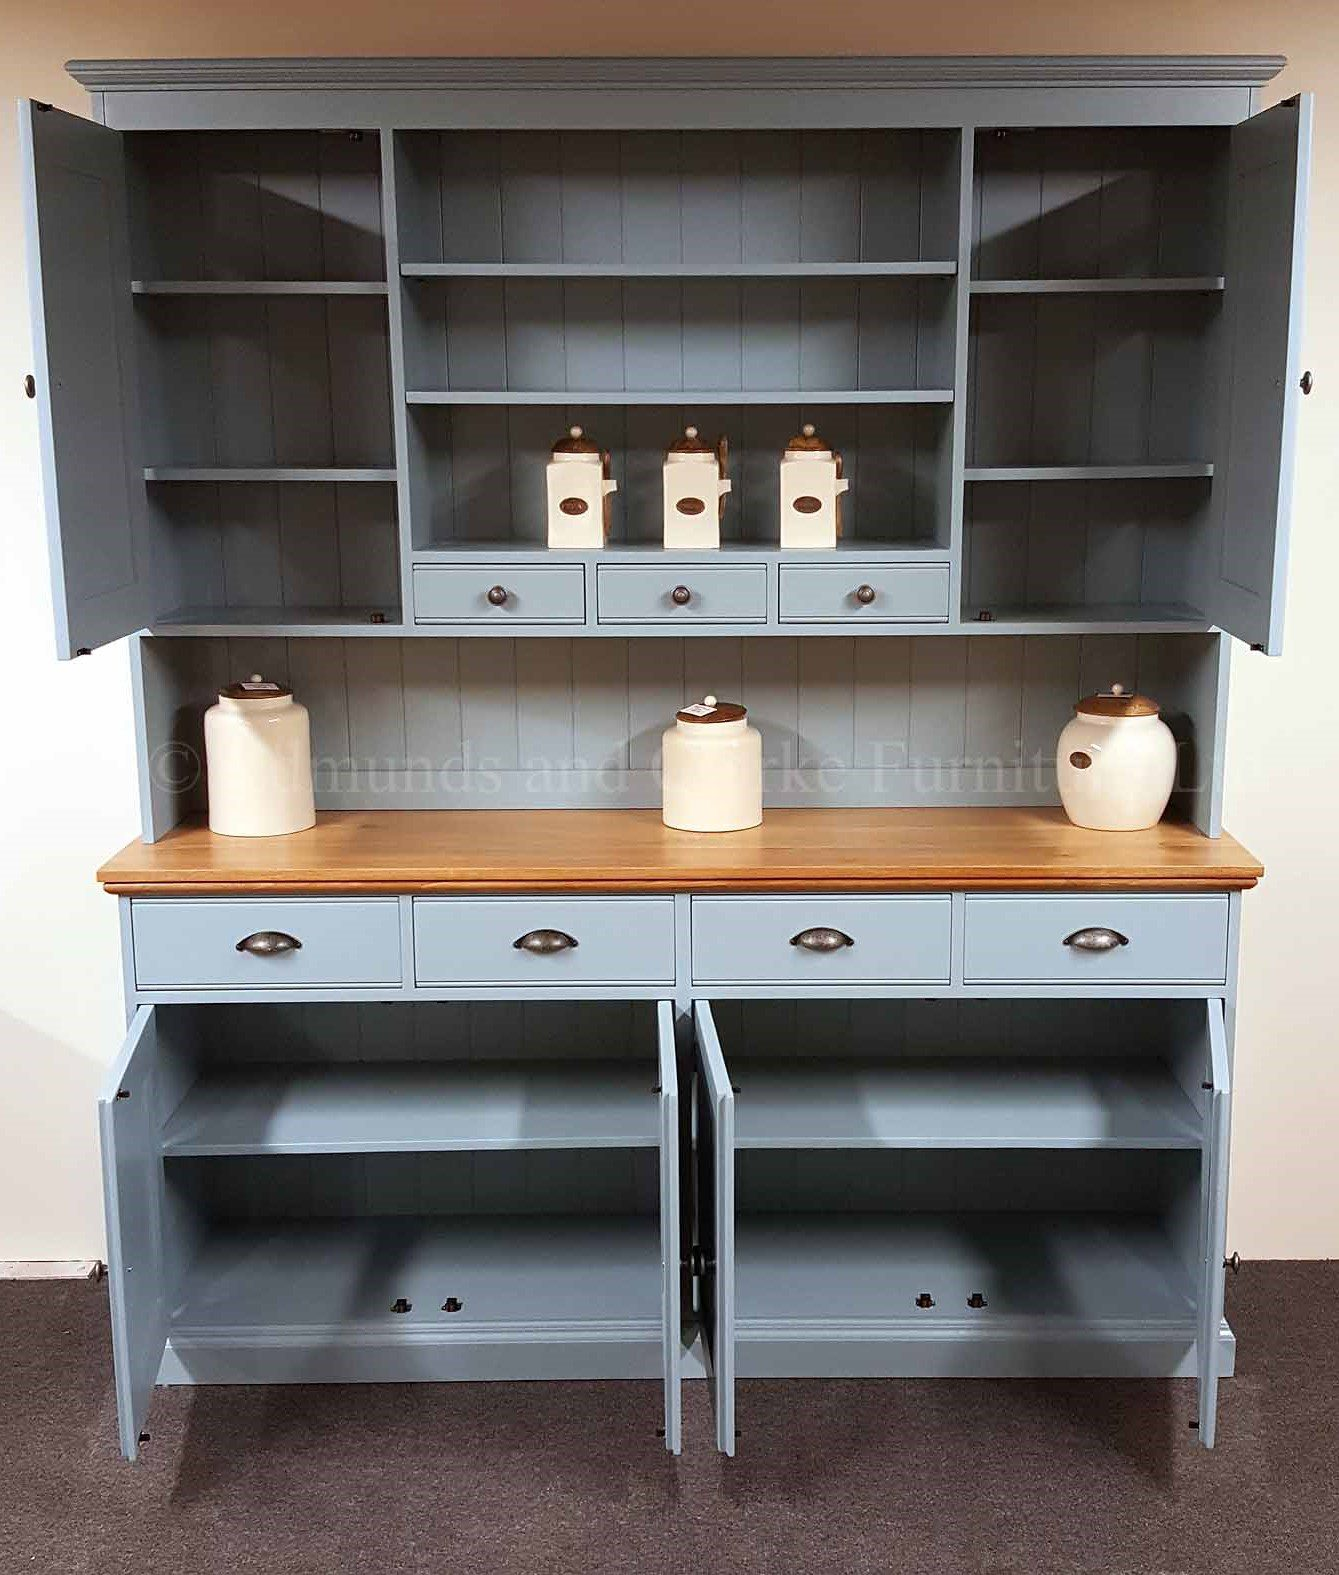 6ft wide plain painted kitchen dresser painted blue with oak top